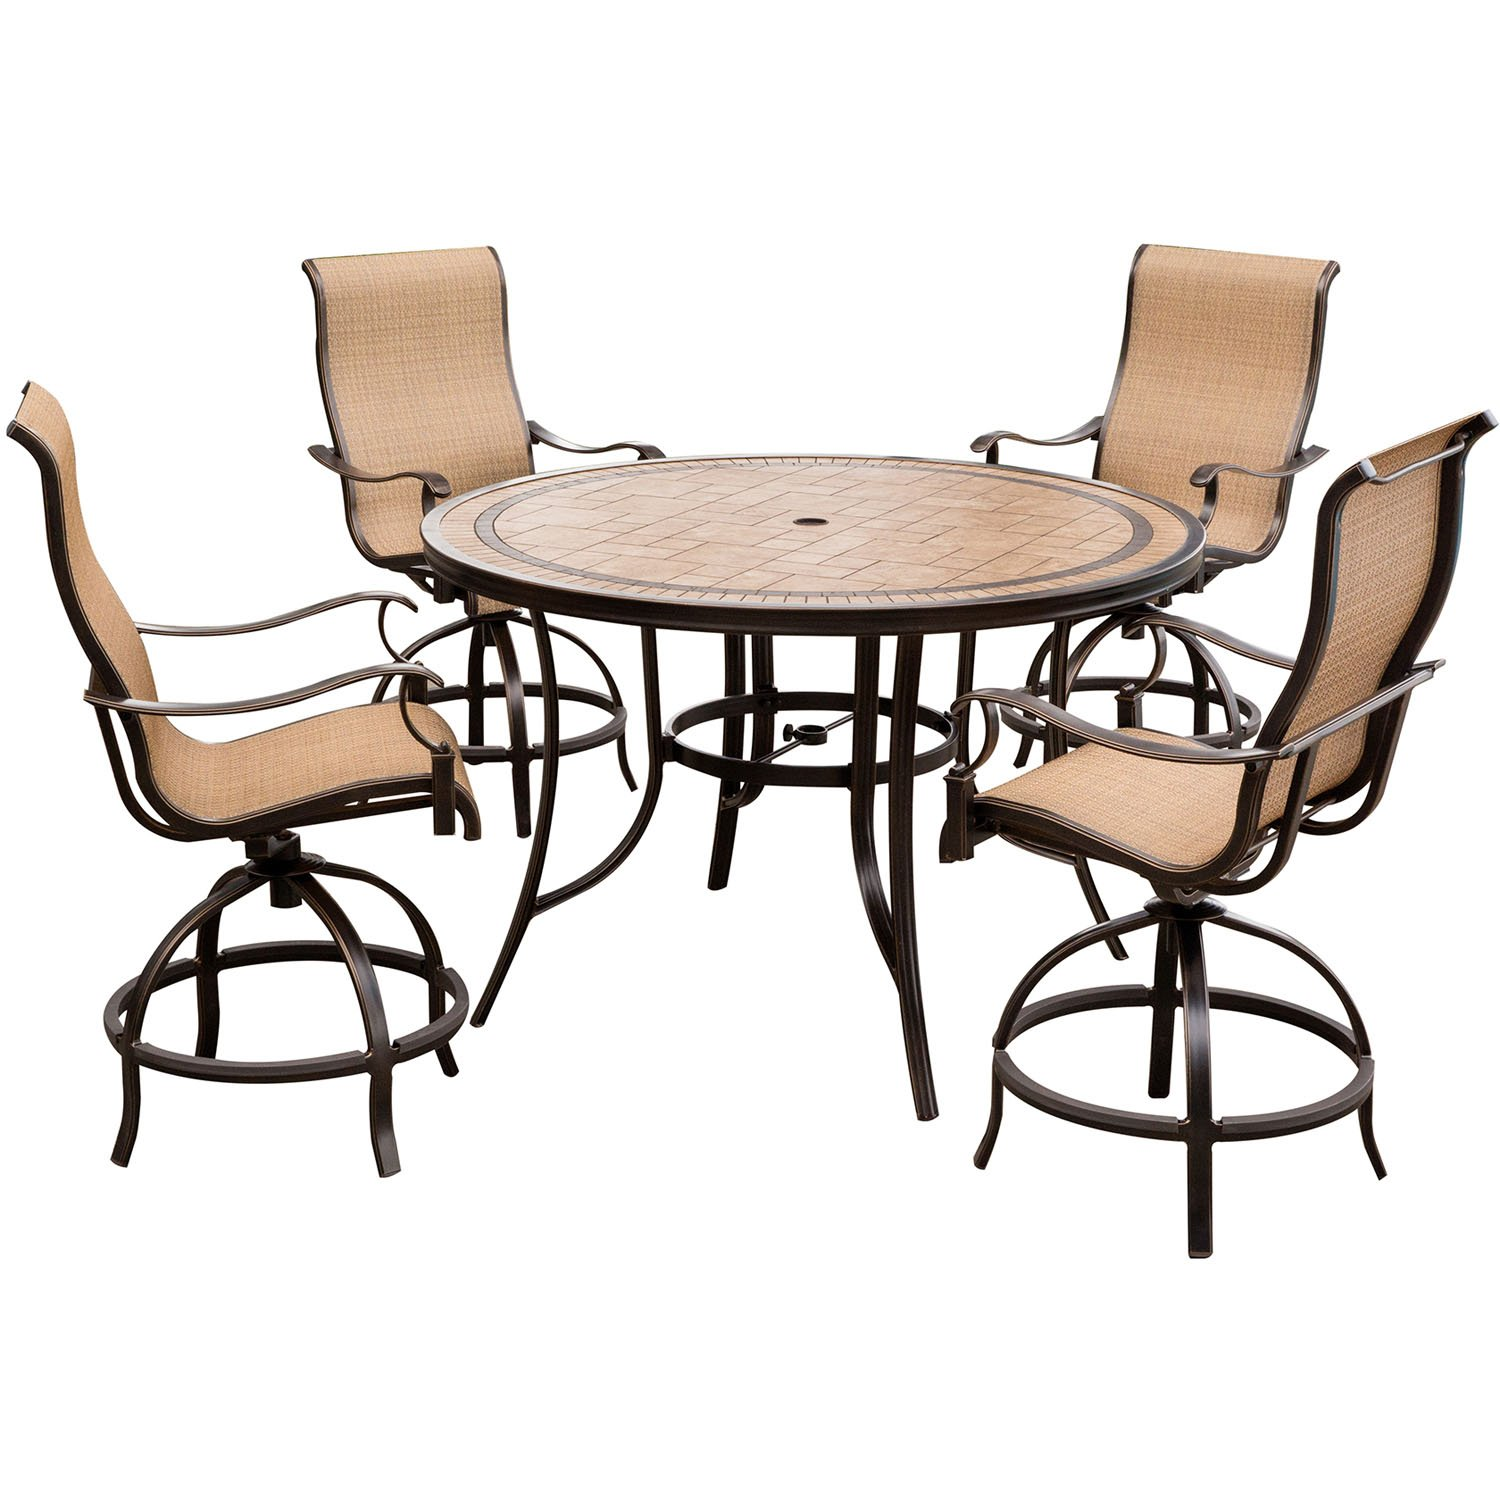 Hanover Monaco 5-Piece High-Dining Set with 56 in. Tile-top Table